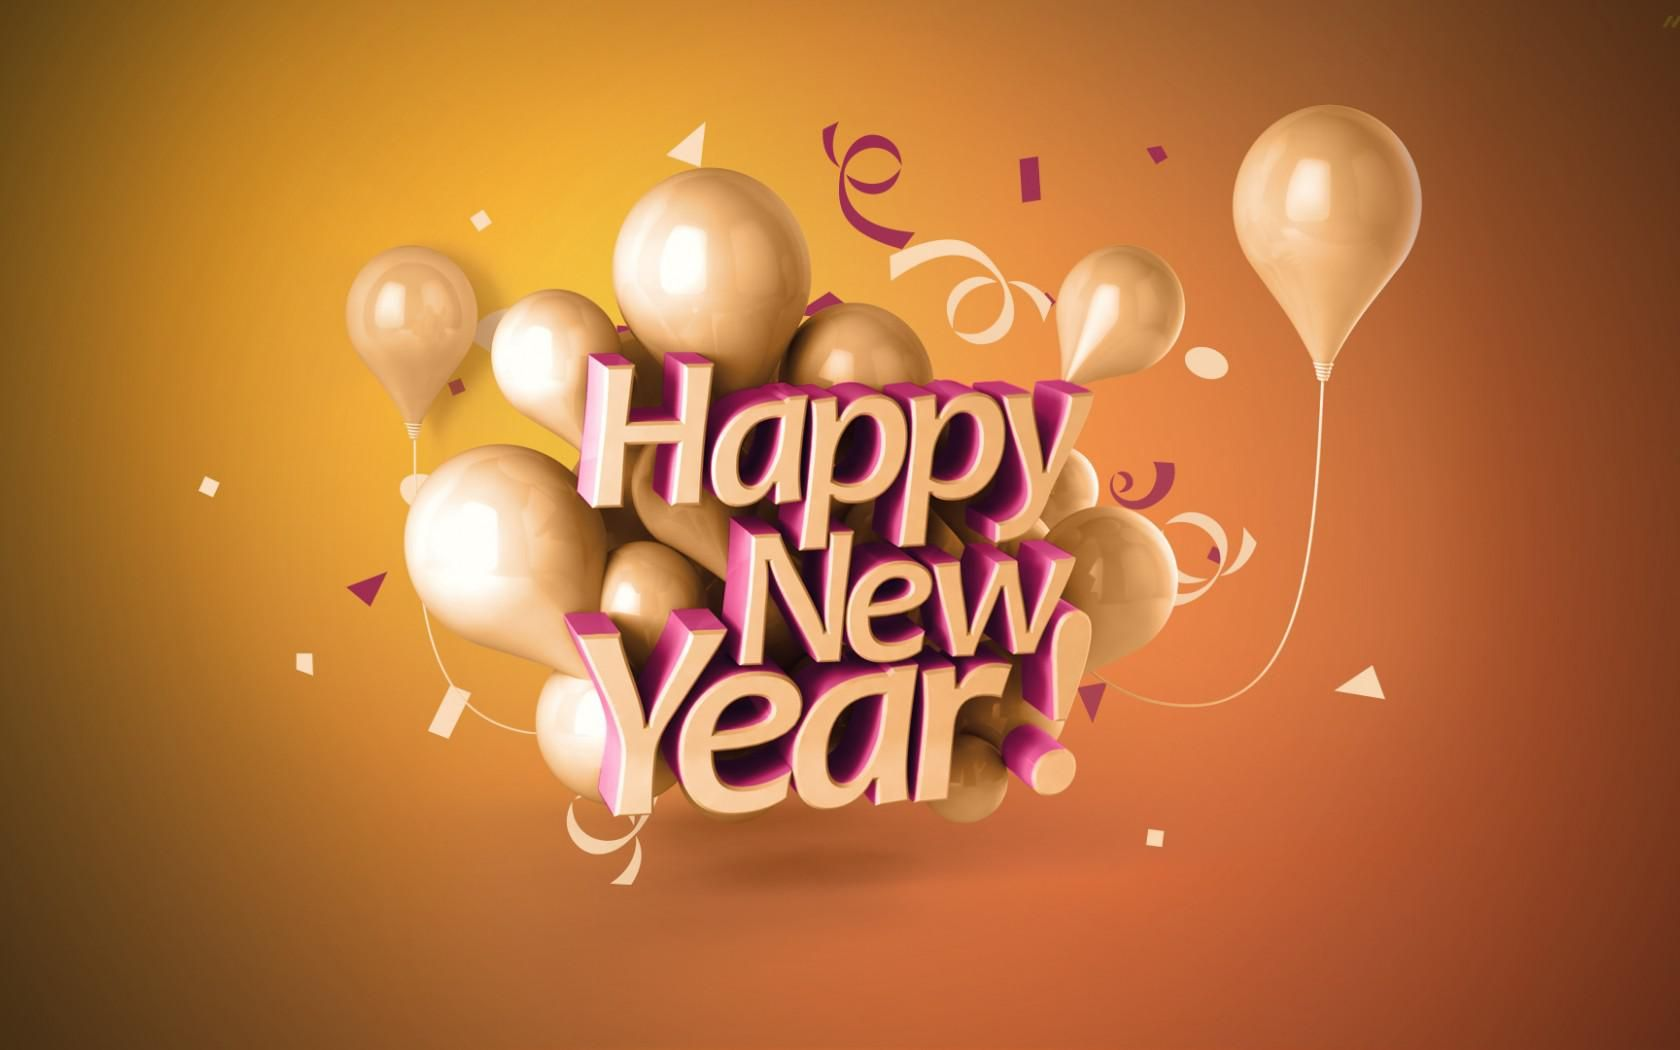 Wallpaper download new year 2016 - Happy New Year Photos Download